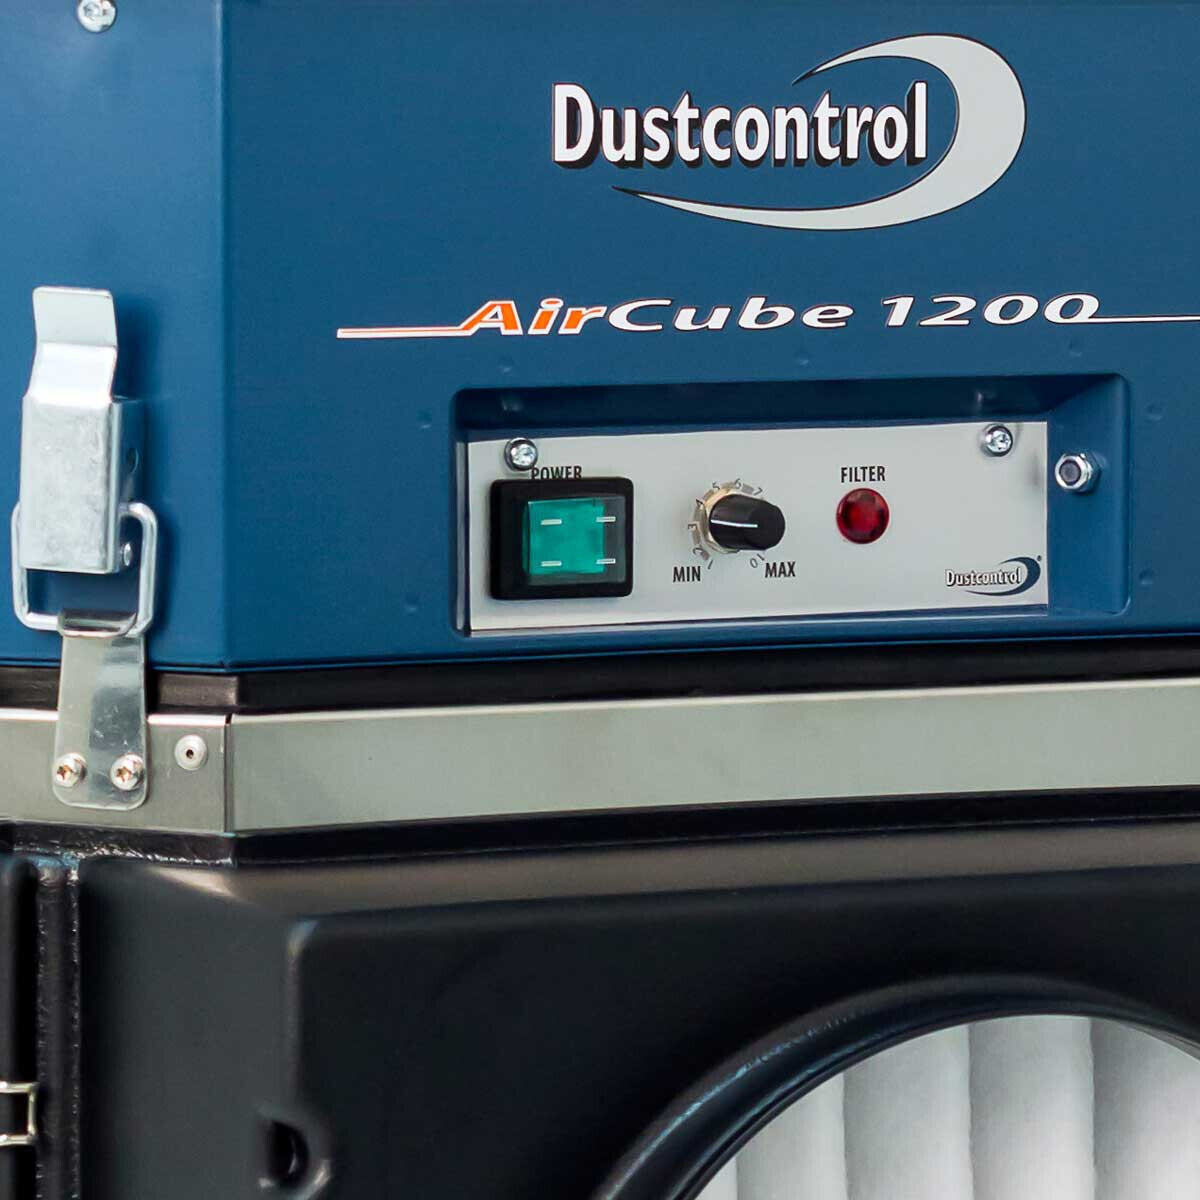 DustControl DC AirCube 1200 Control Panel